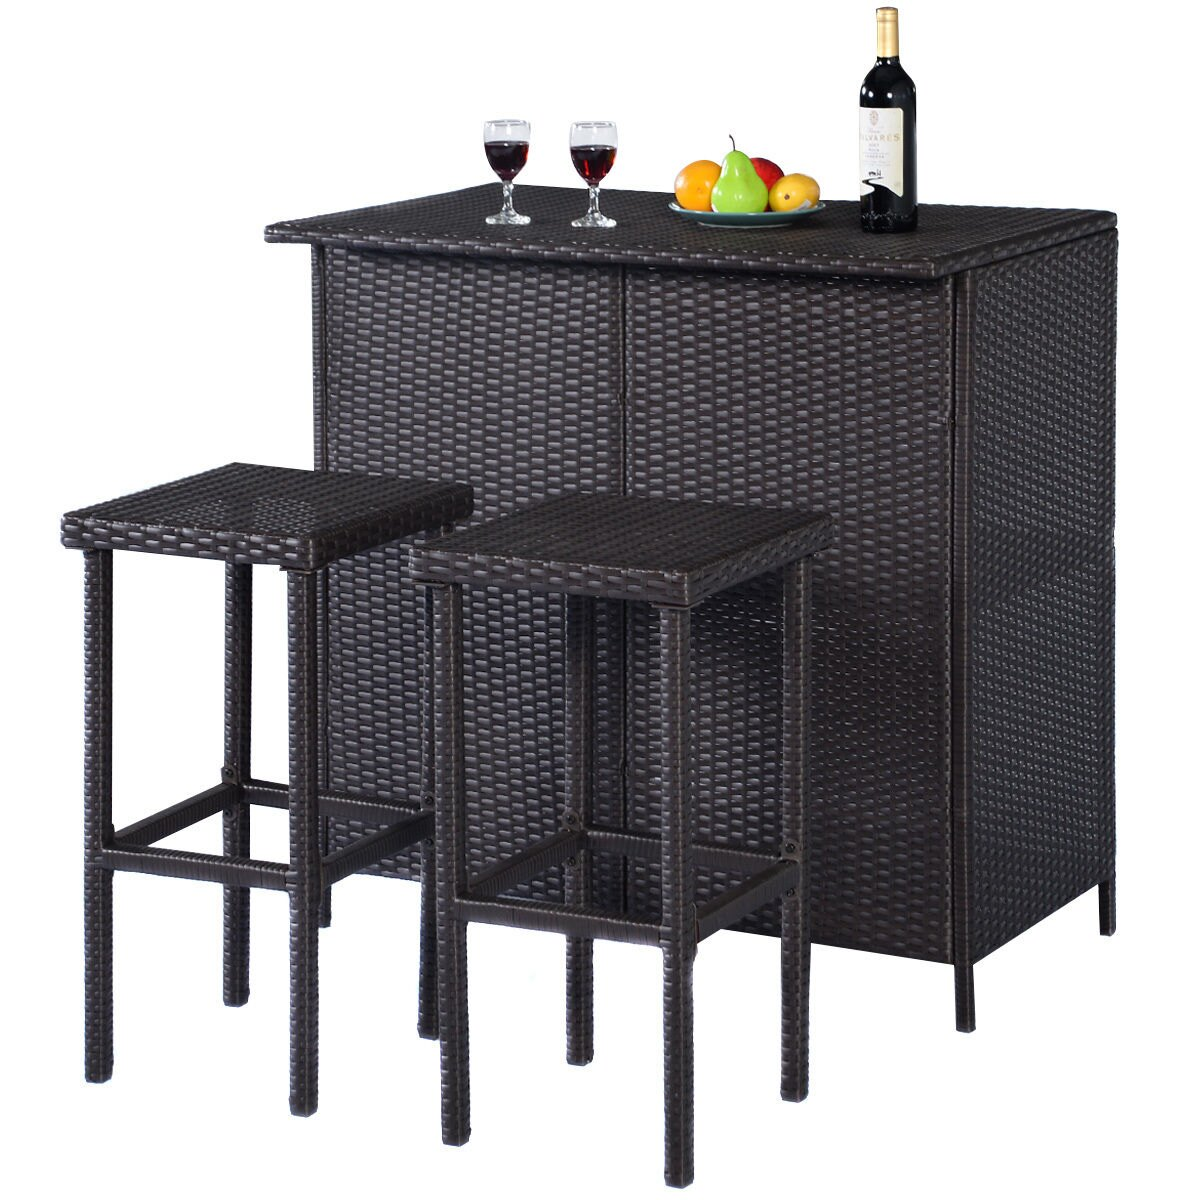 3-Piece Costway Rattan Wicker Outdoor Bar Set